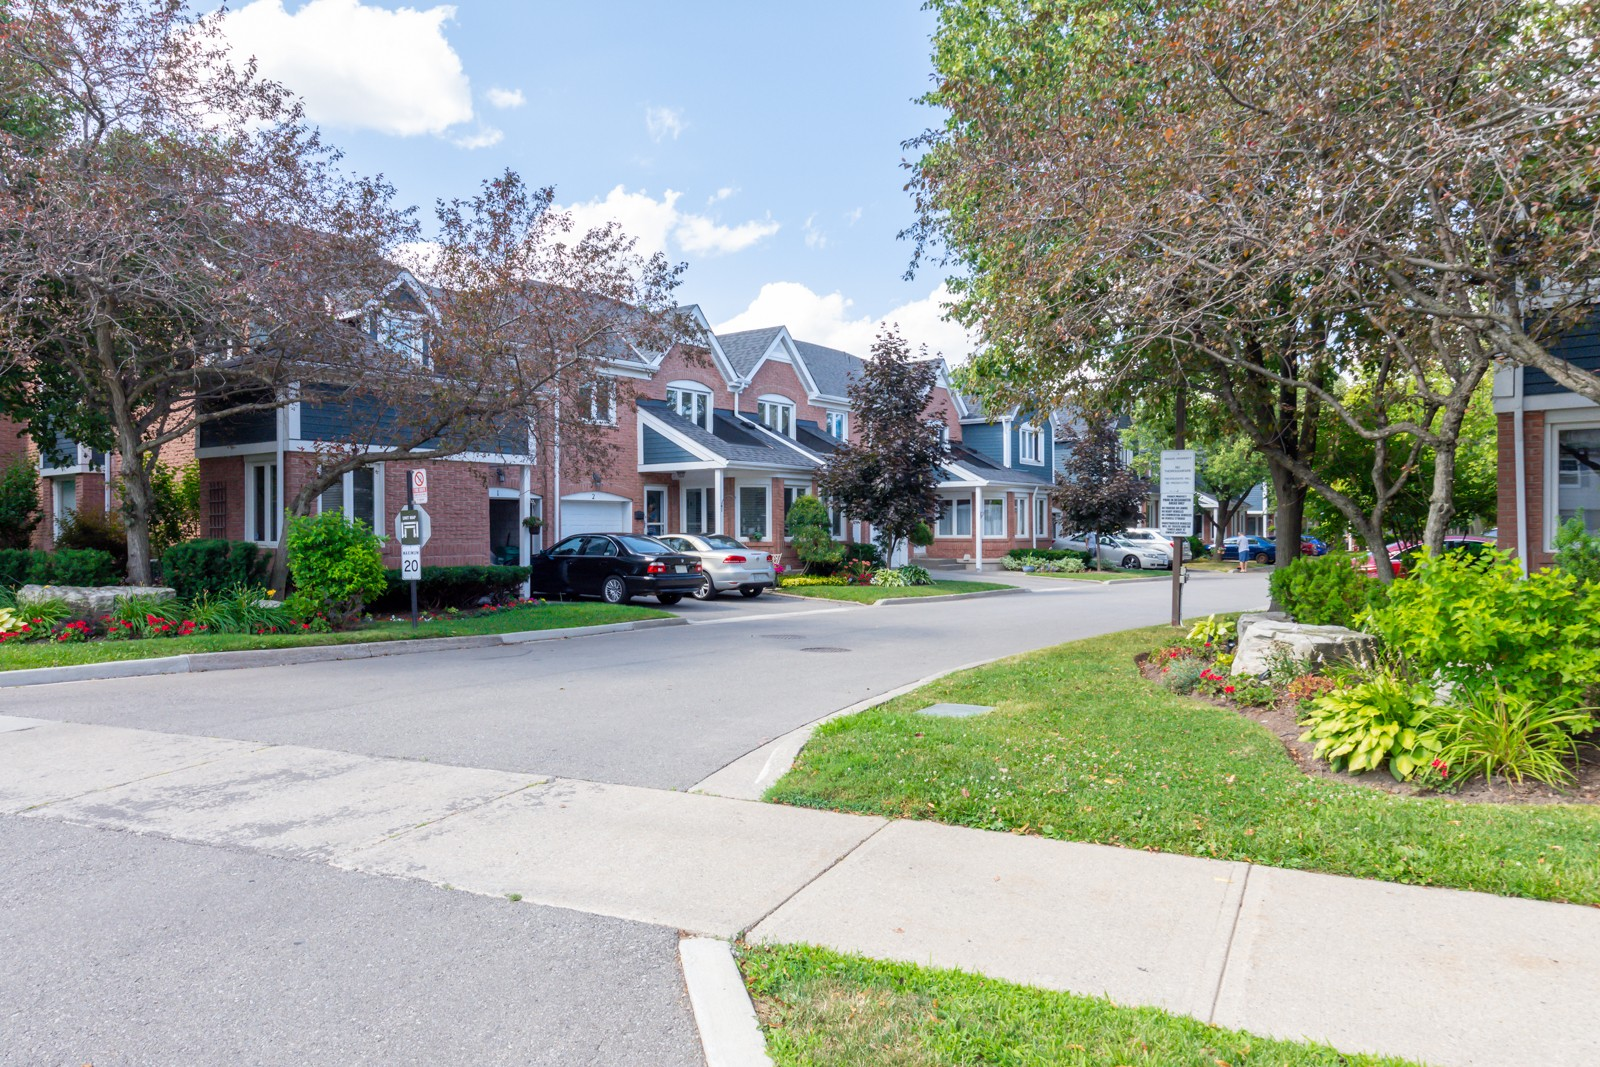 2155 South Millway Townhouses at 2155 South Millway, Mississauga 1